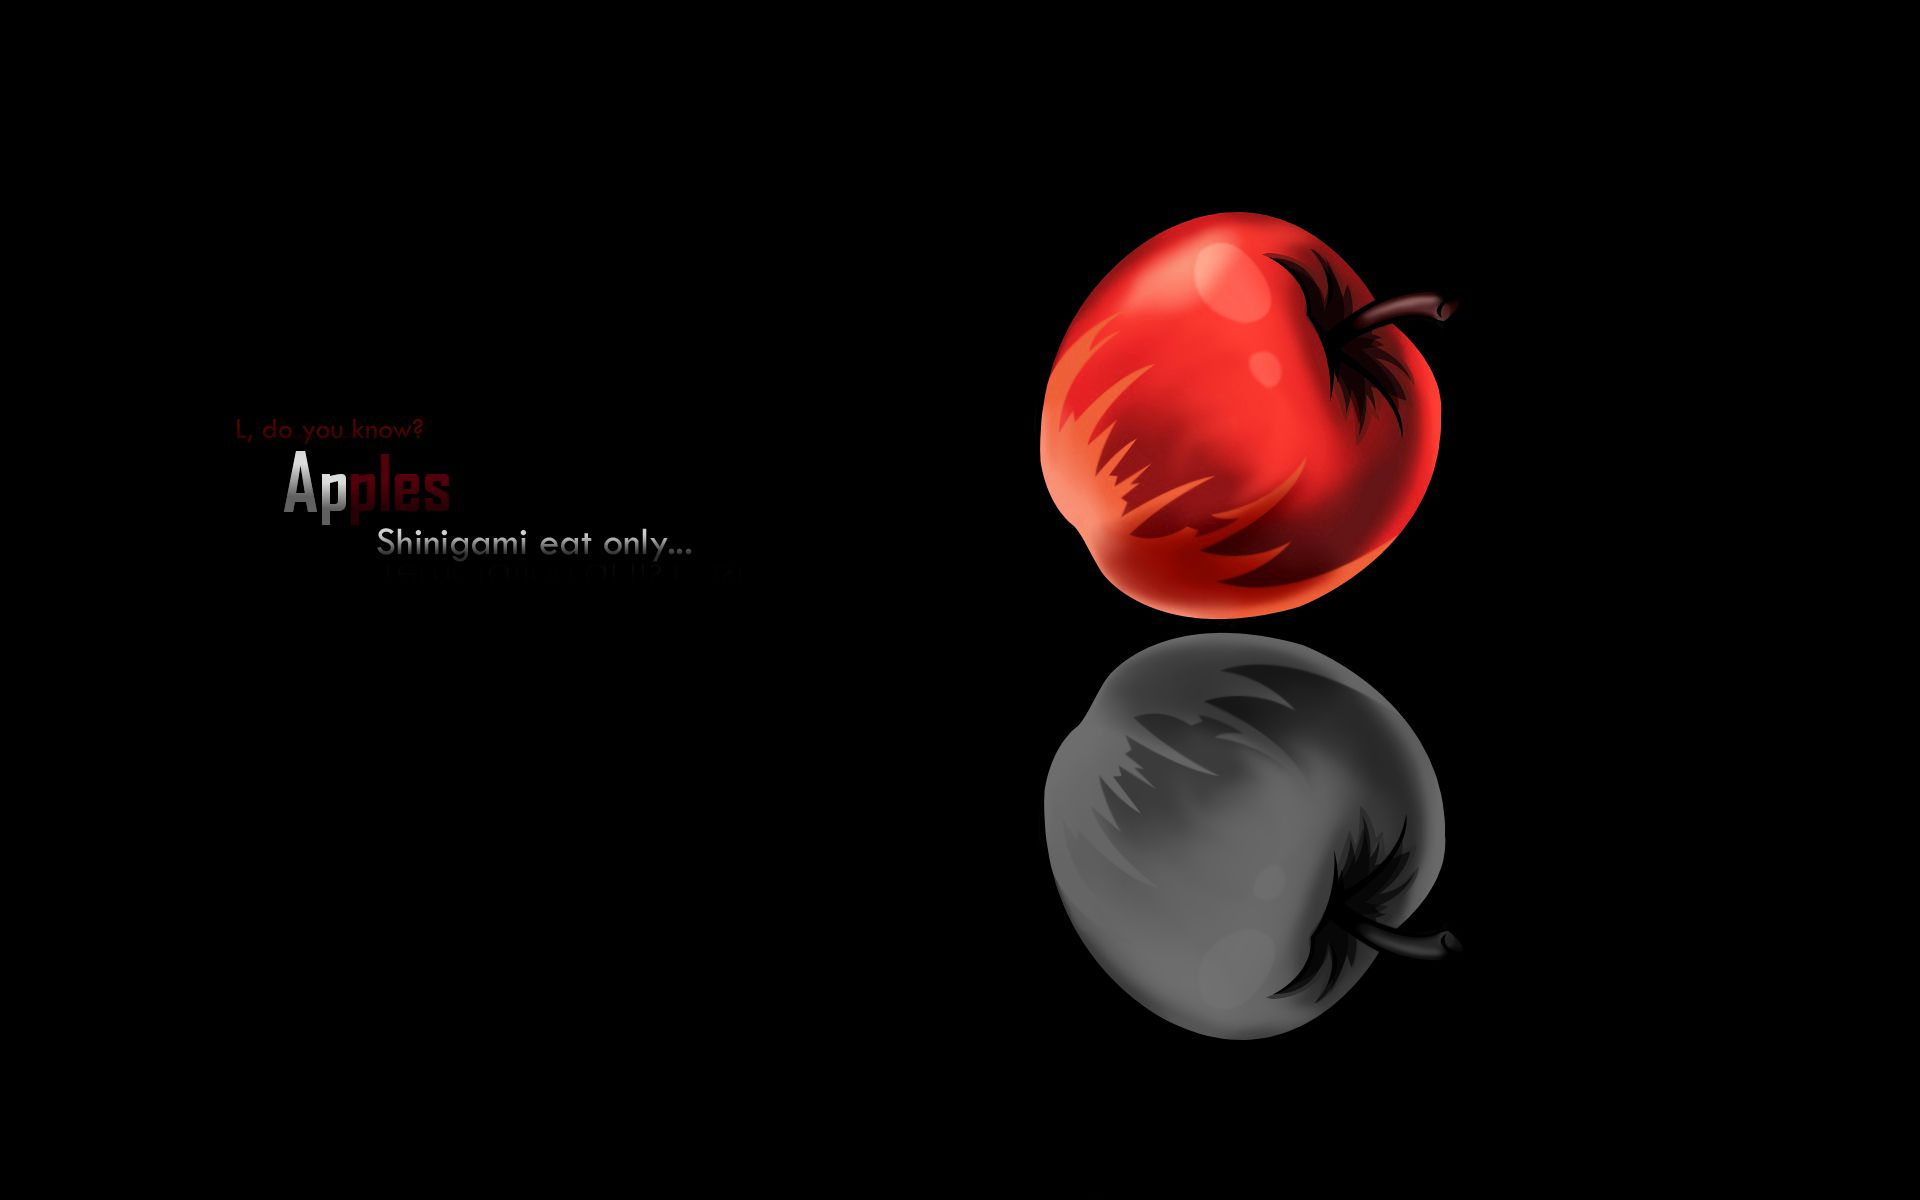 Death Note Apple Wallpaper